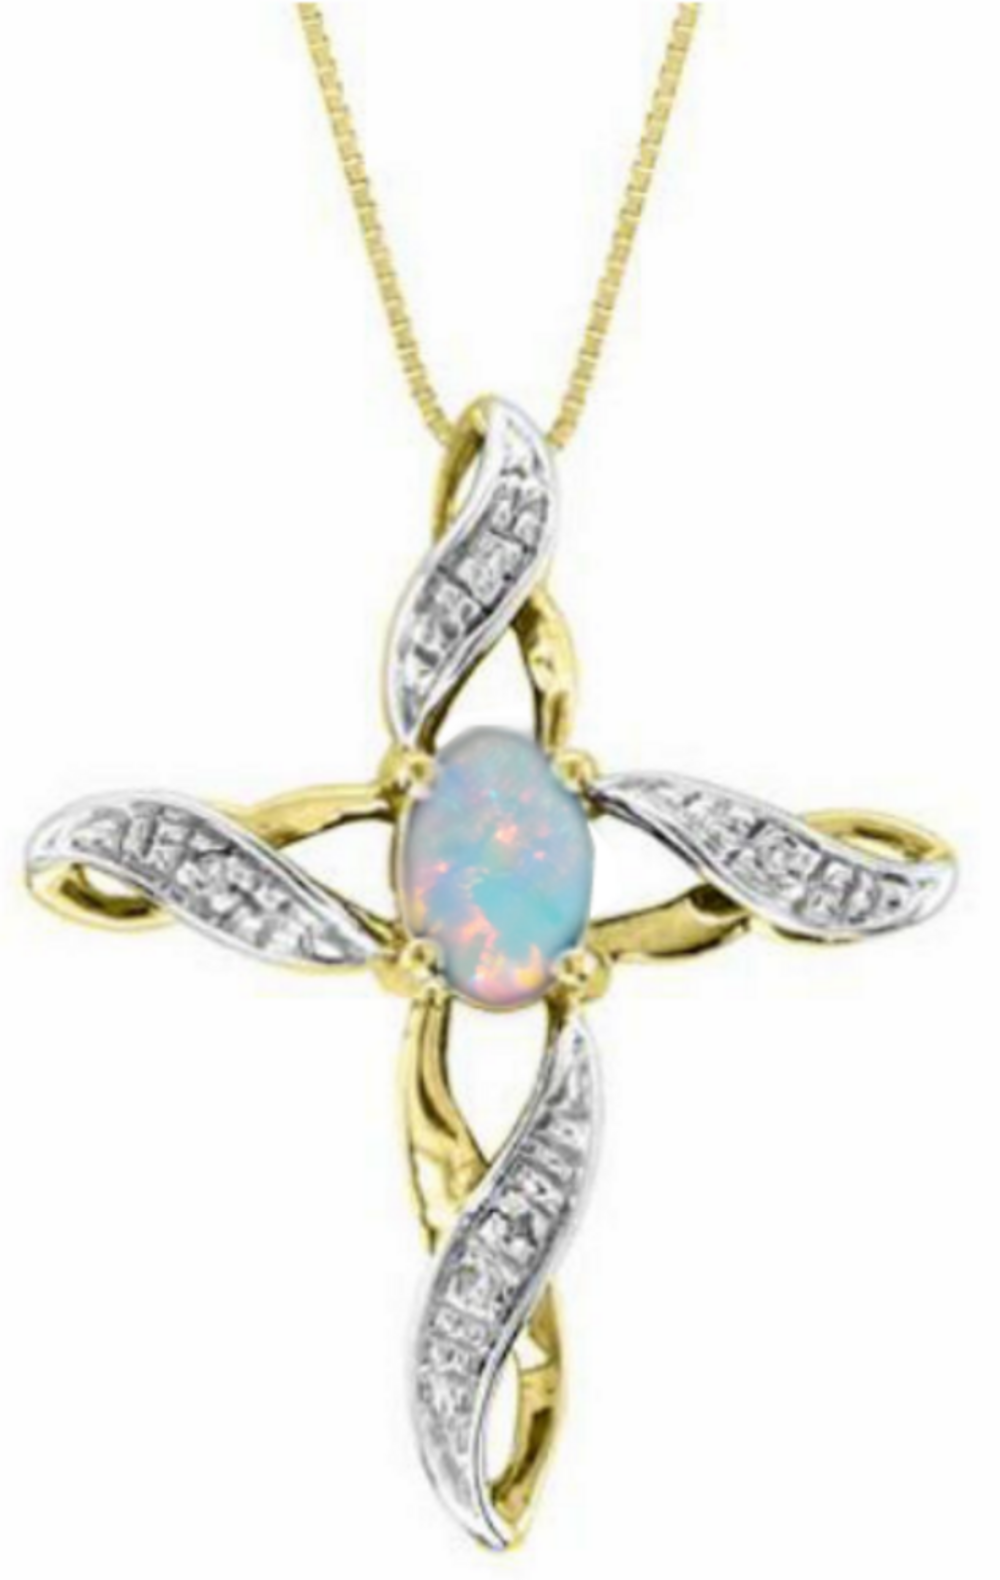 Diamond & Opal Cross Pendant Necklace Set In White Gold Plated or Yellow Gold Plated Silver by Elie Int.